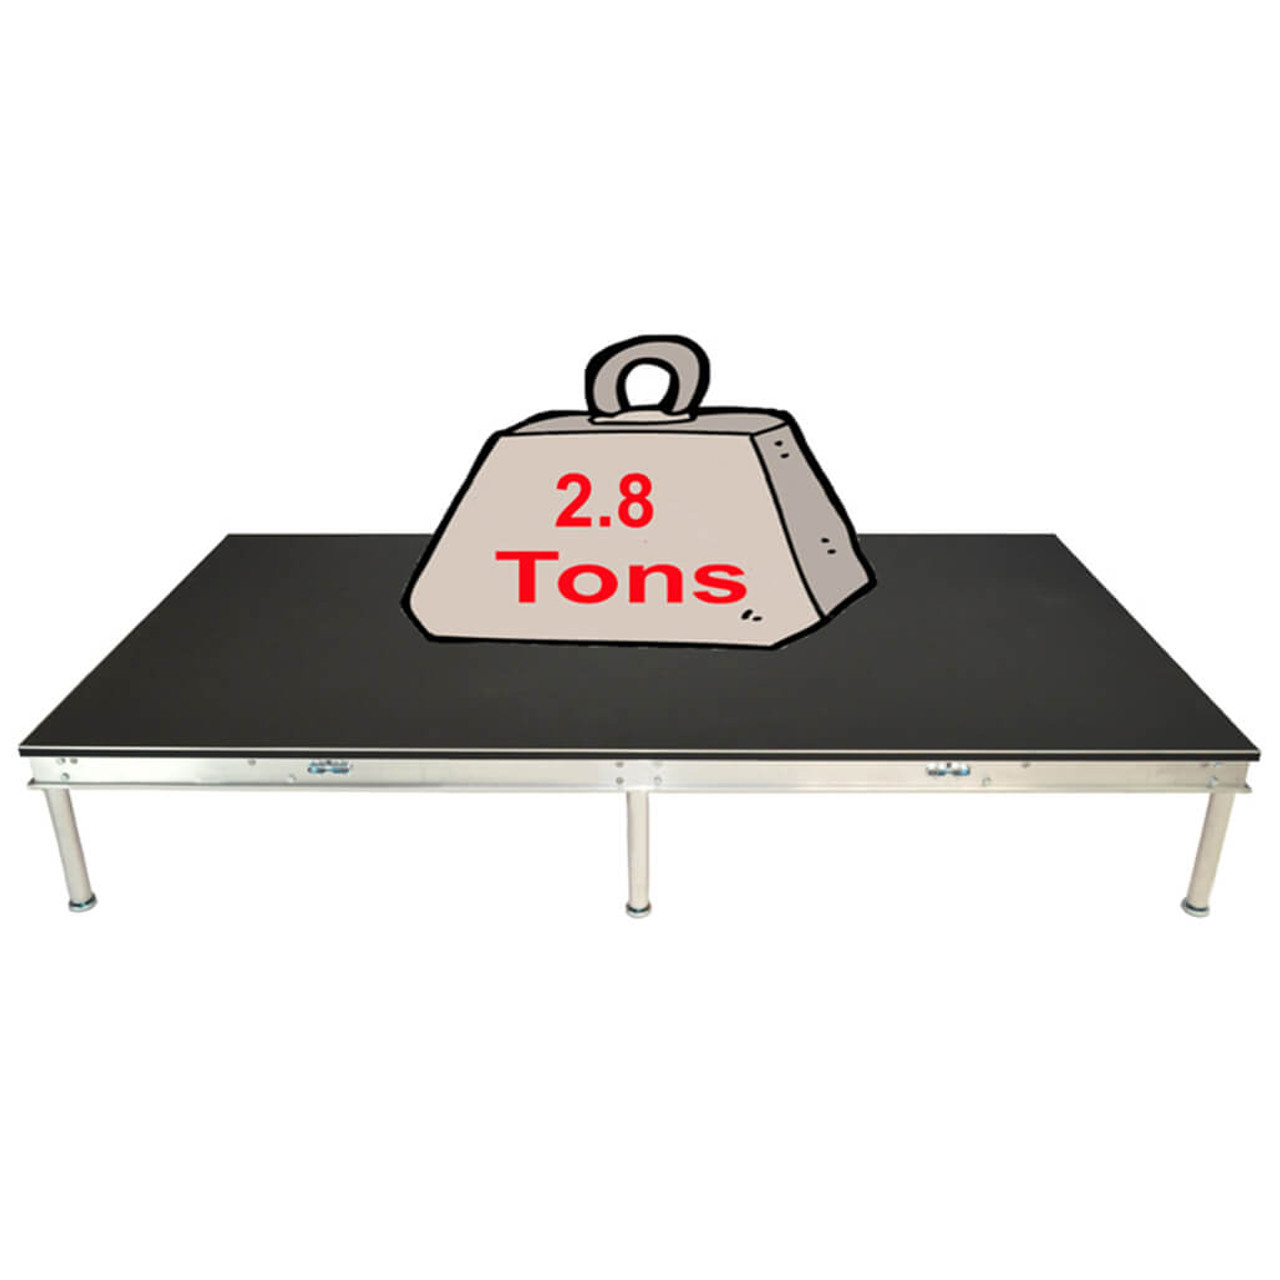 Top rated Quik Stage 8' x 12' High Portable Stage Package with Black Polyvinyl Non-Skid Surface. Additional Heights and Surfaces Available - Holds 2.8 tons per 4 x 8 when spread out evenly